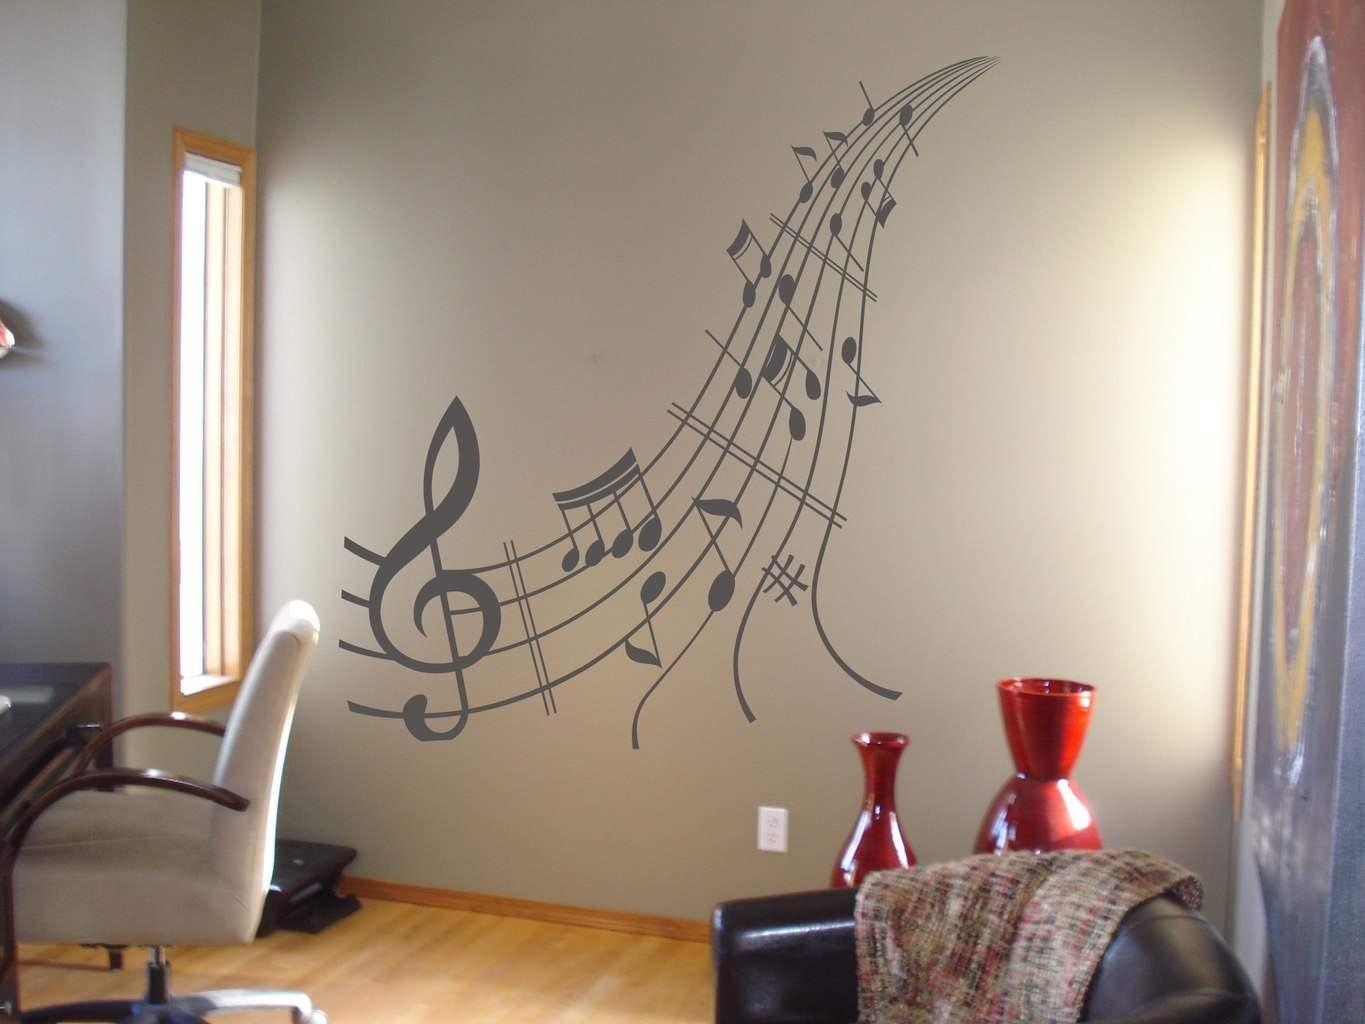 Music Notes Wall Art Decal | Music Wall Decal Sticker With Music Notes Wall Art Decals (View 20 of 20)